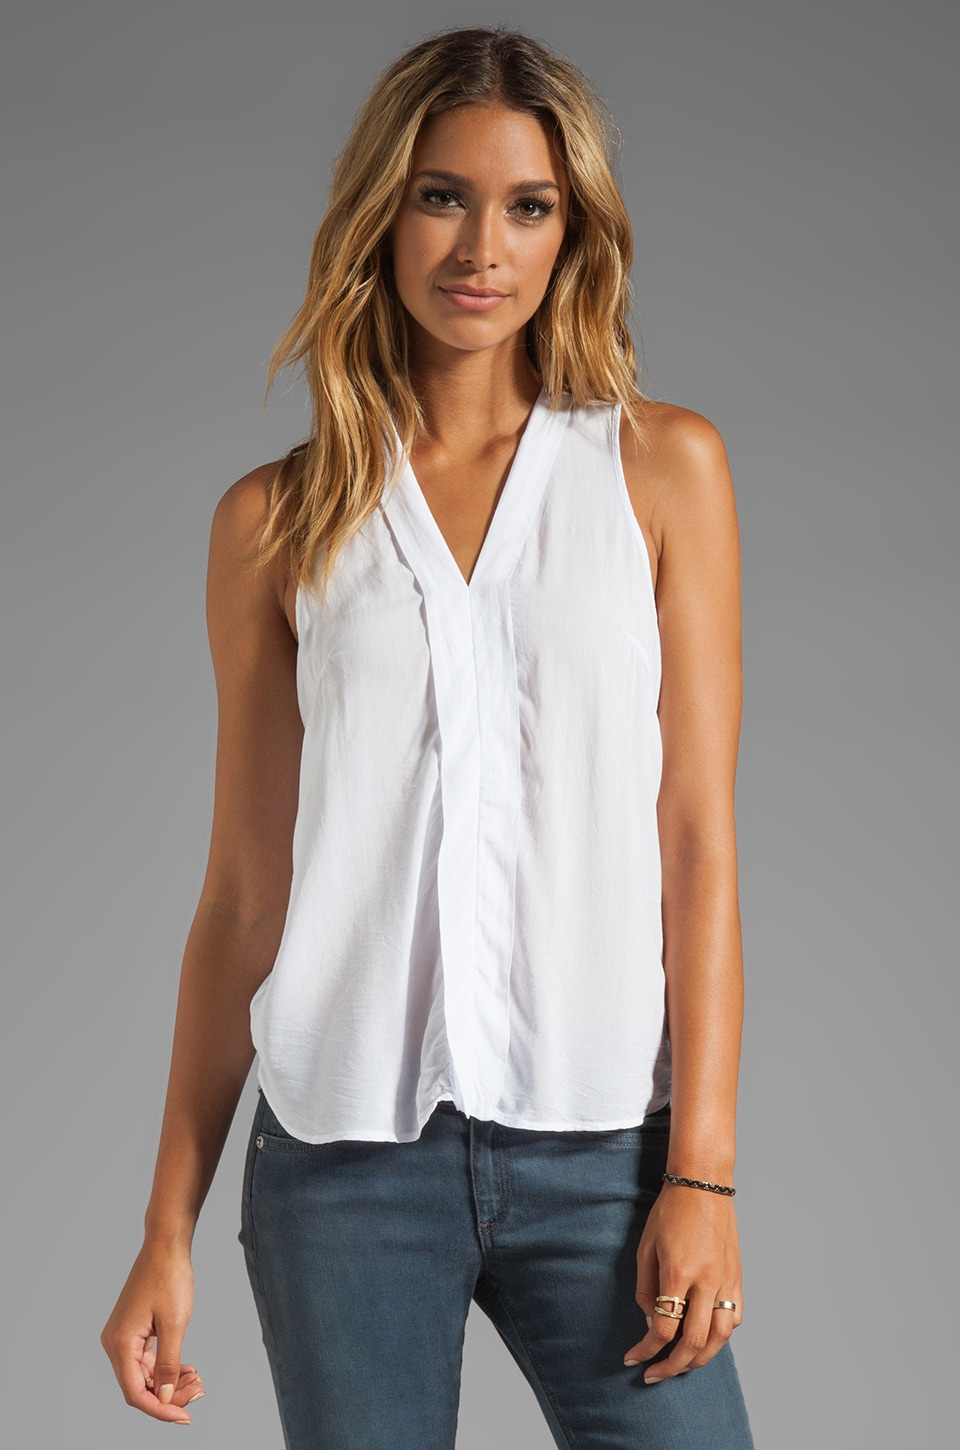 Splendid Shirting Tank in White